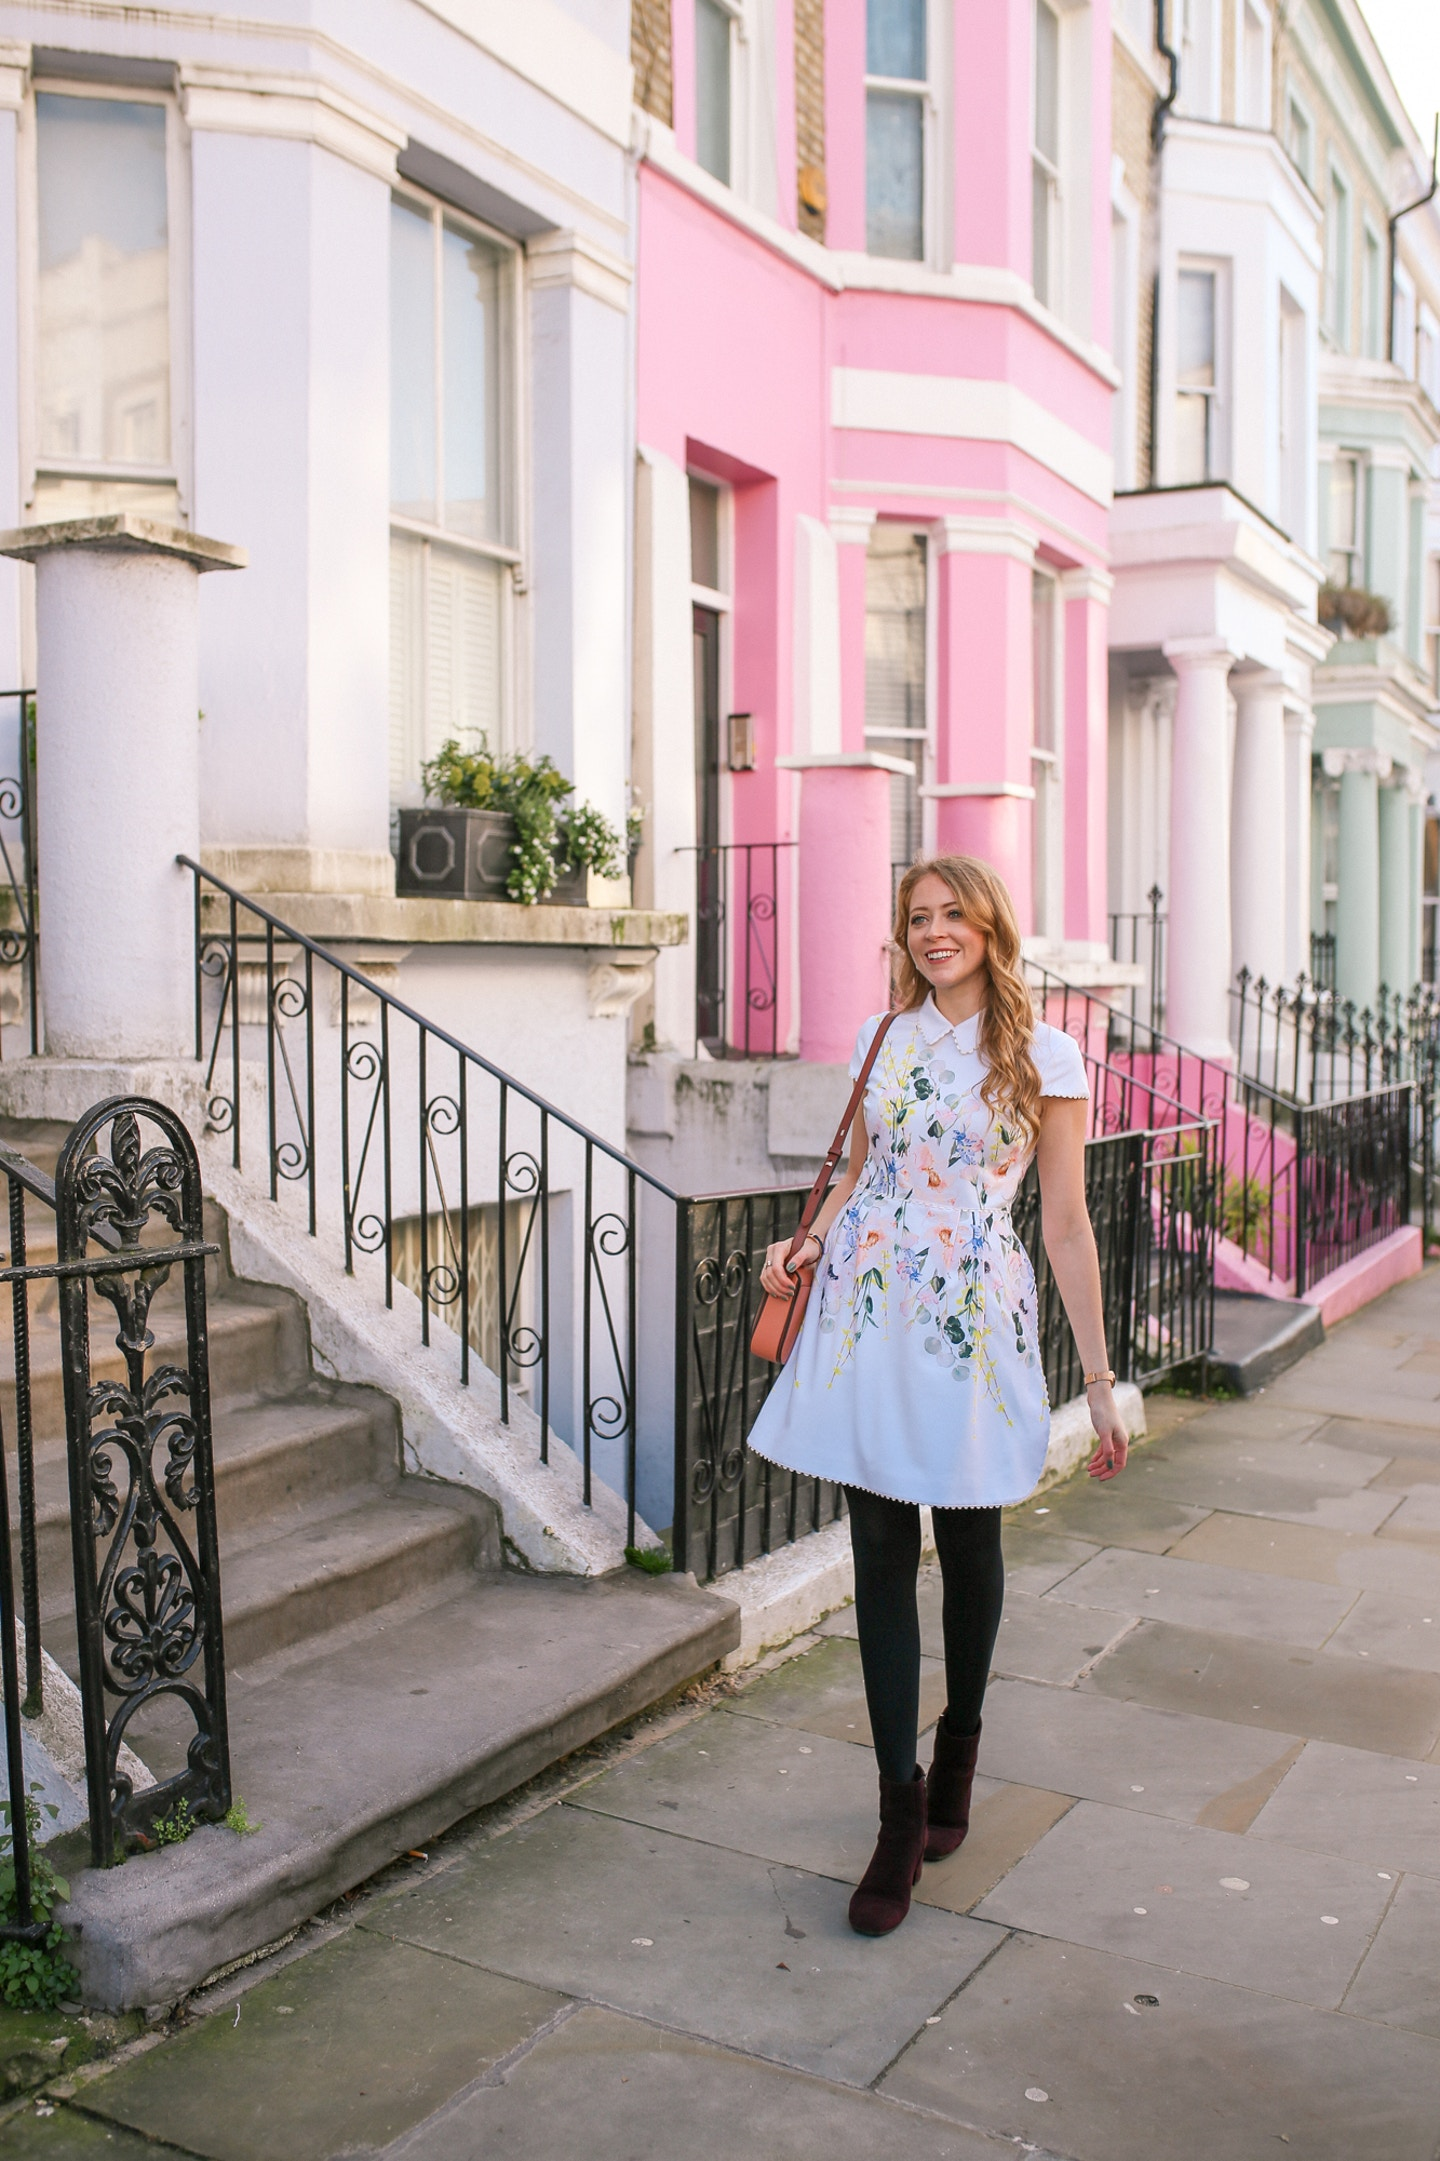 Top 10 Things to do in Notting Hill - from colourful houses to flea markets to charming pubs, discover my favourite London Neighbourhood with me!